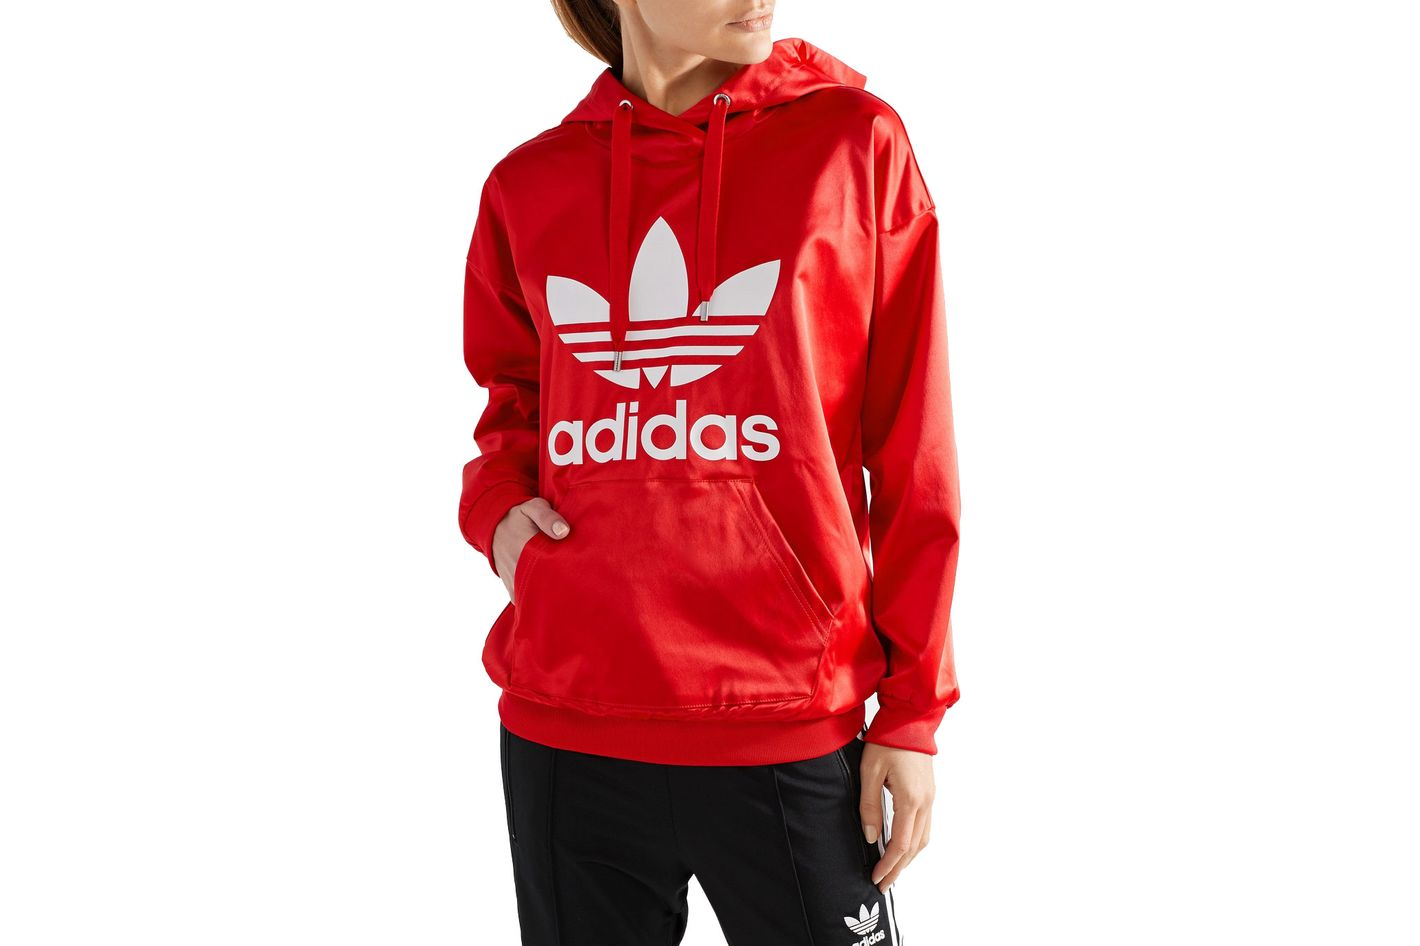 ADIDAS ORIGINALS Trefoil printed satin-jersey hooded top